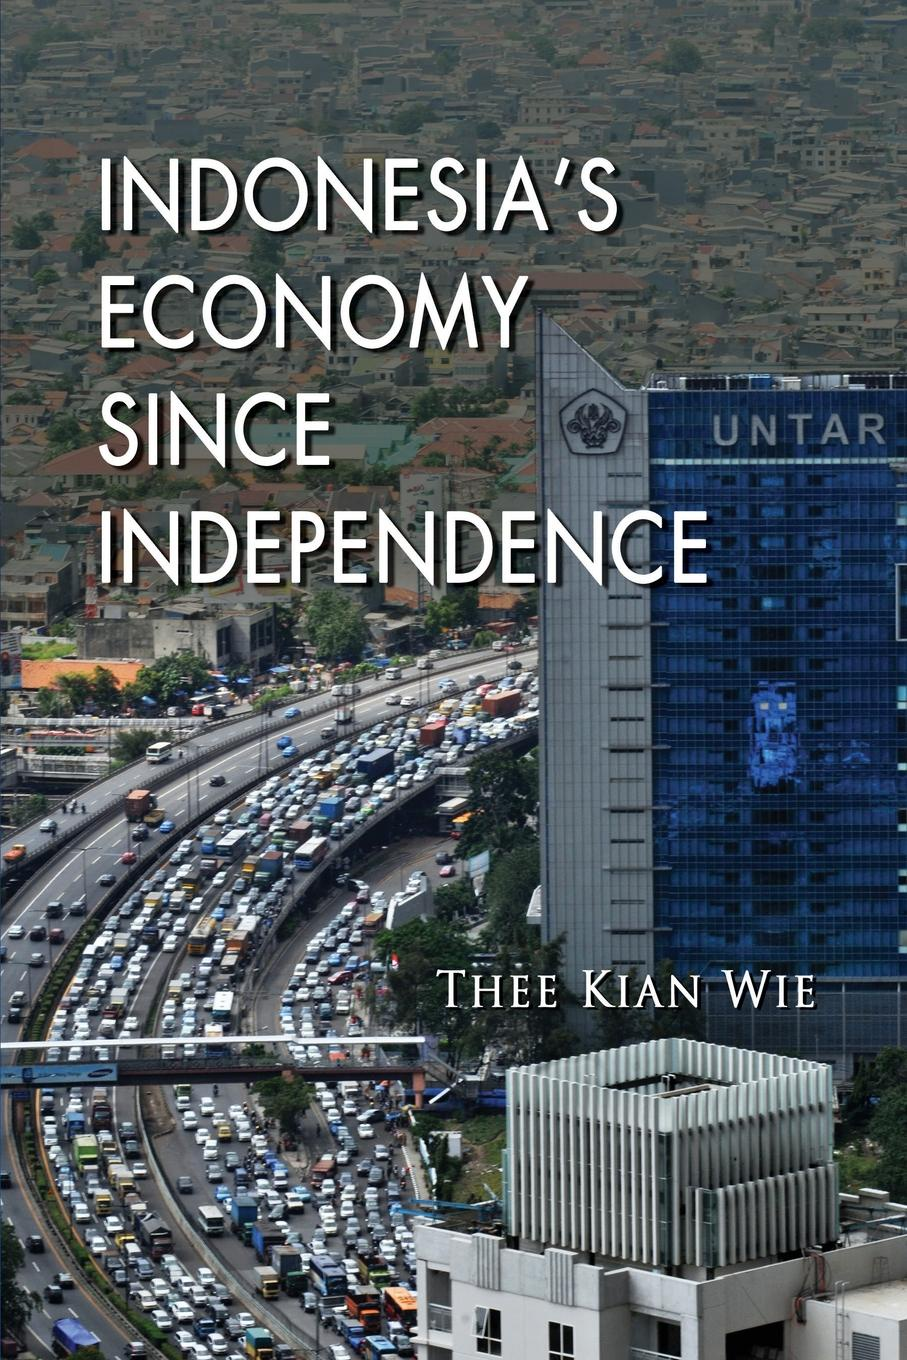 цены на Thee Kian Wie Indonesia's Economy since Independence  в интернет-магазинах